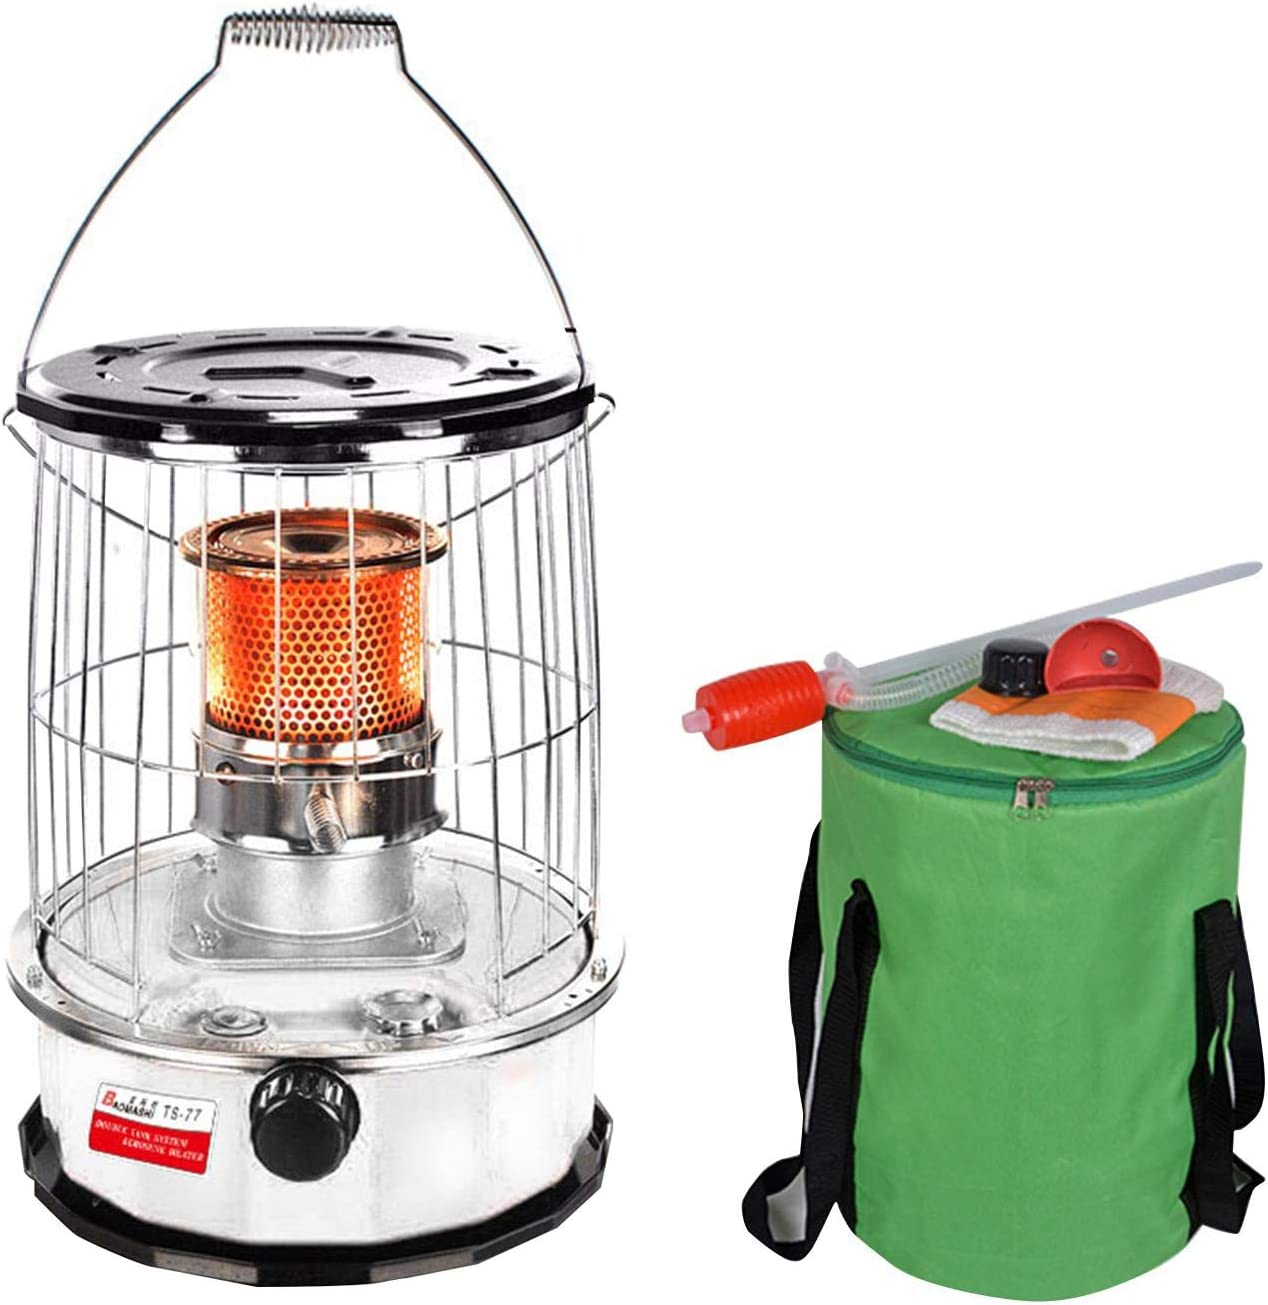 Kerosene Stove Heater Indoor Heater Oil Heater Glass Burner, Portable Kerosene Oil Heater Burner with Storage Bag for Indoor Outdoor Patio Camping Barbecue